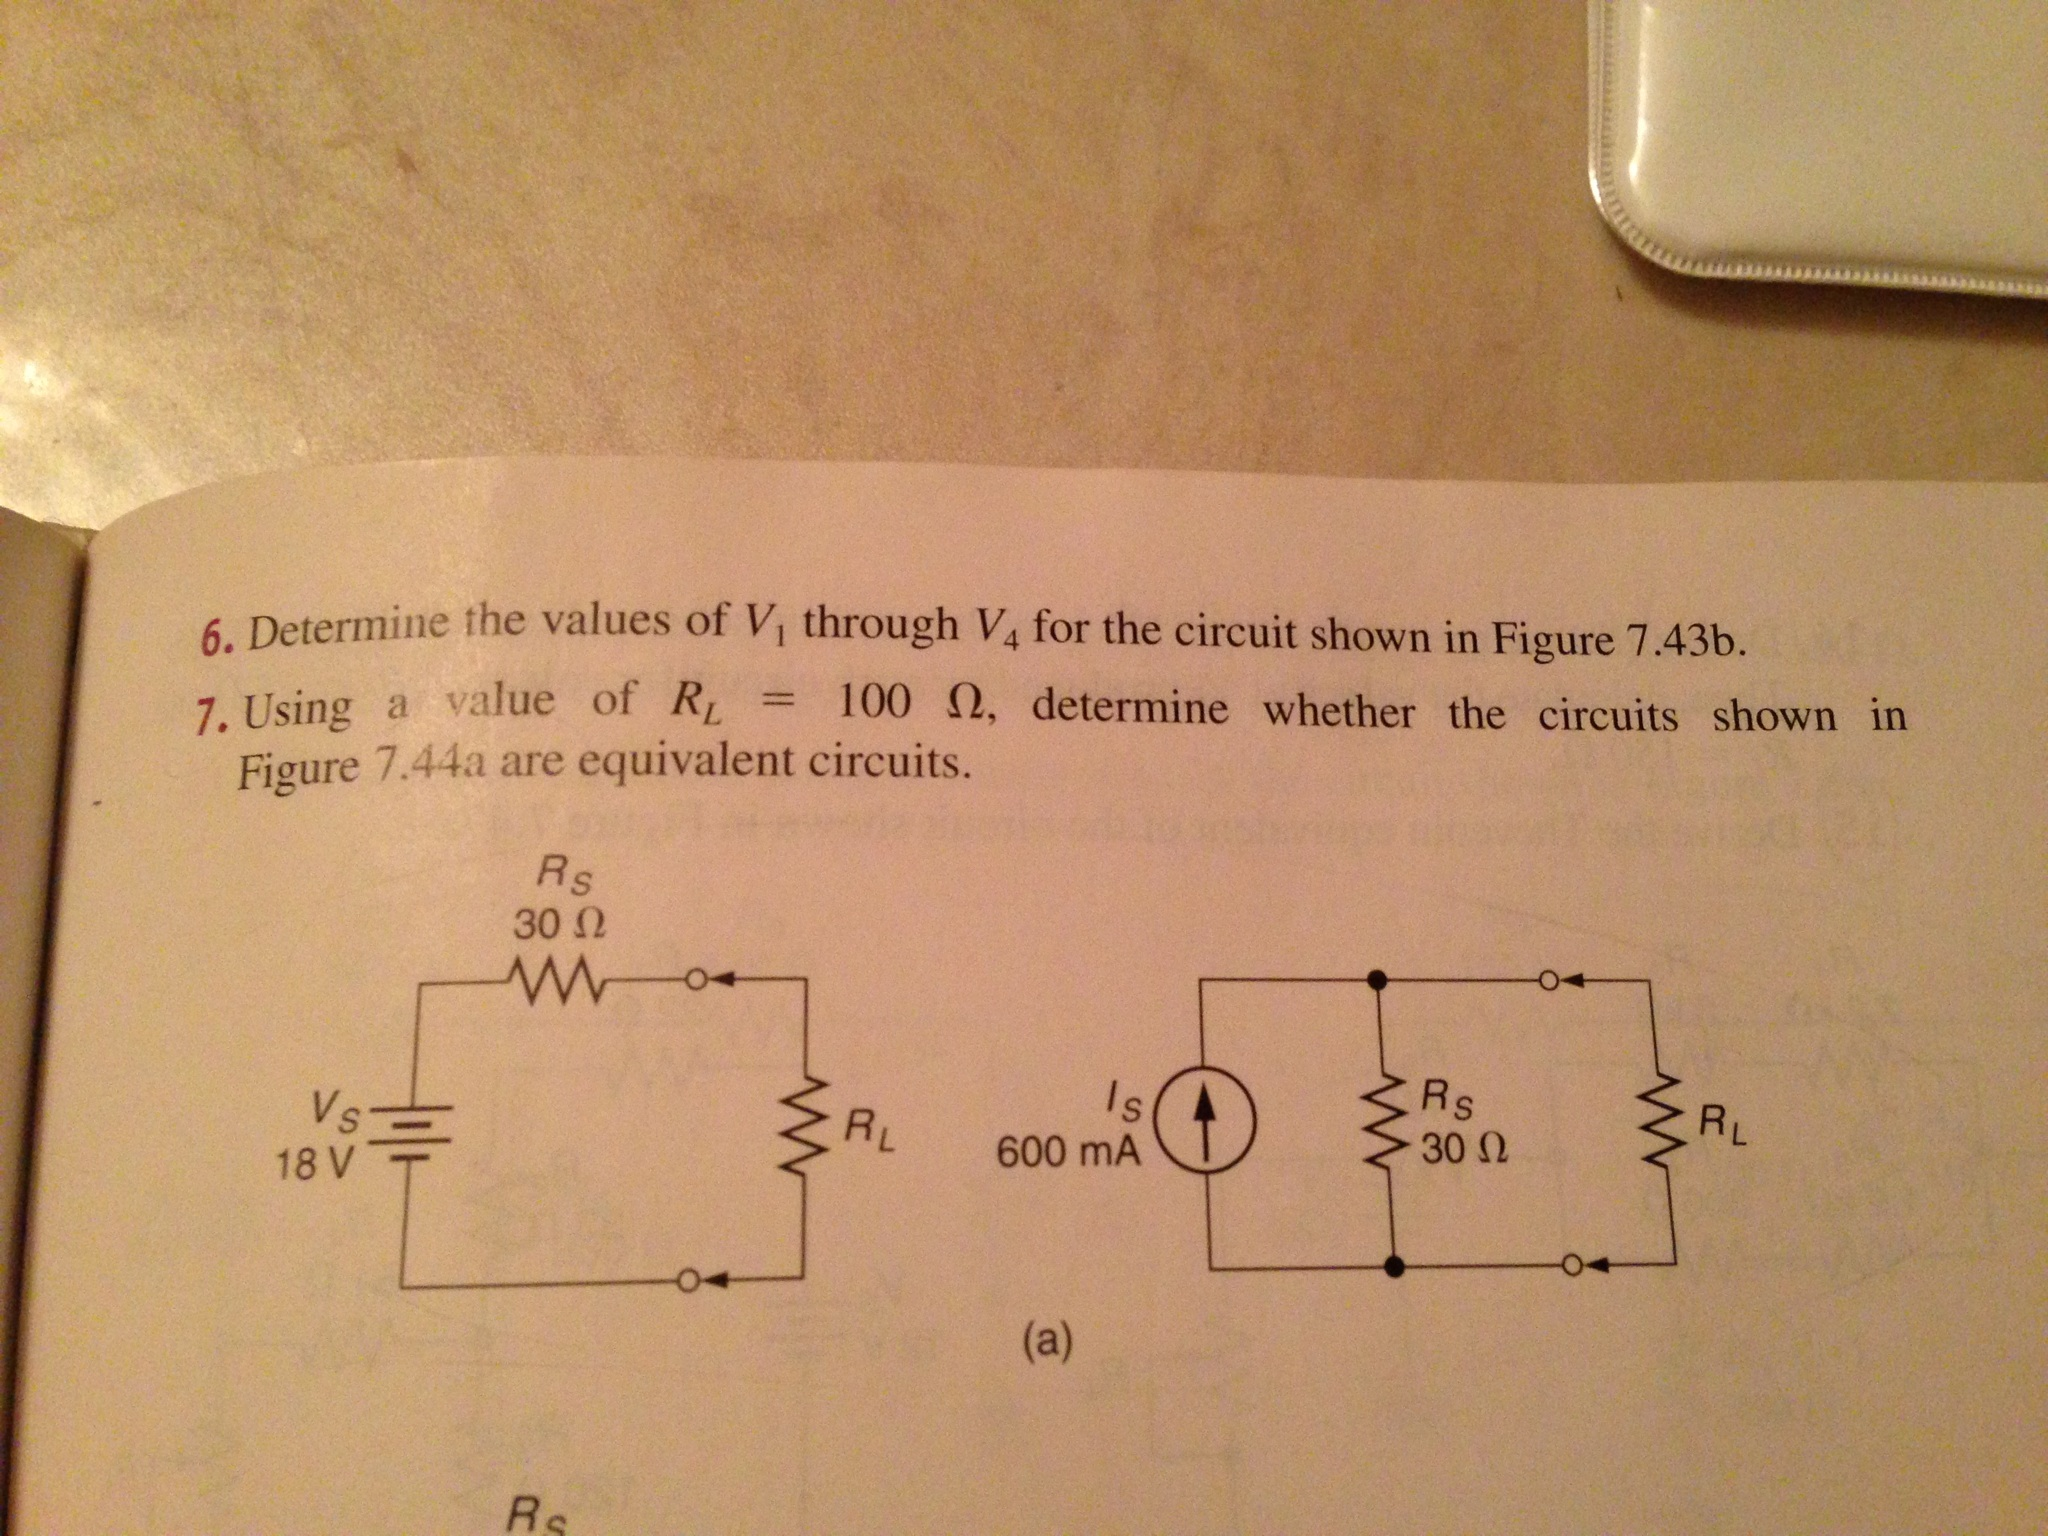 Determine ,he values of V, through V4 for the circ